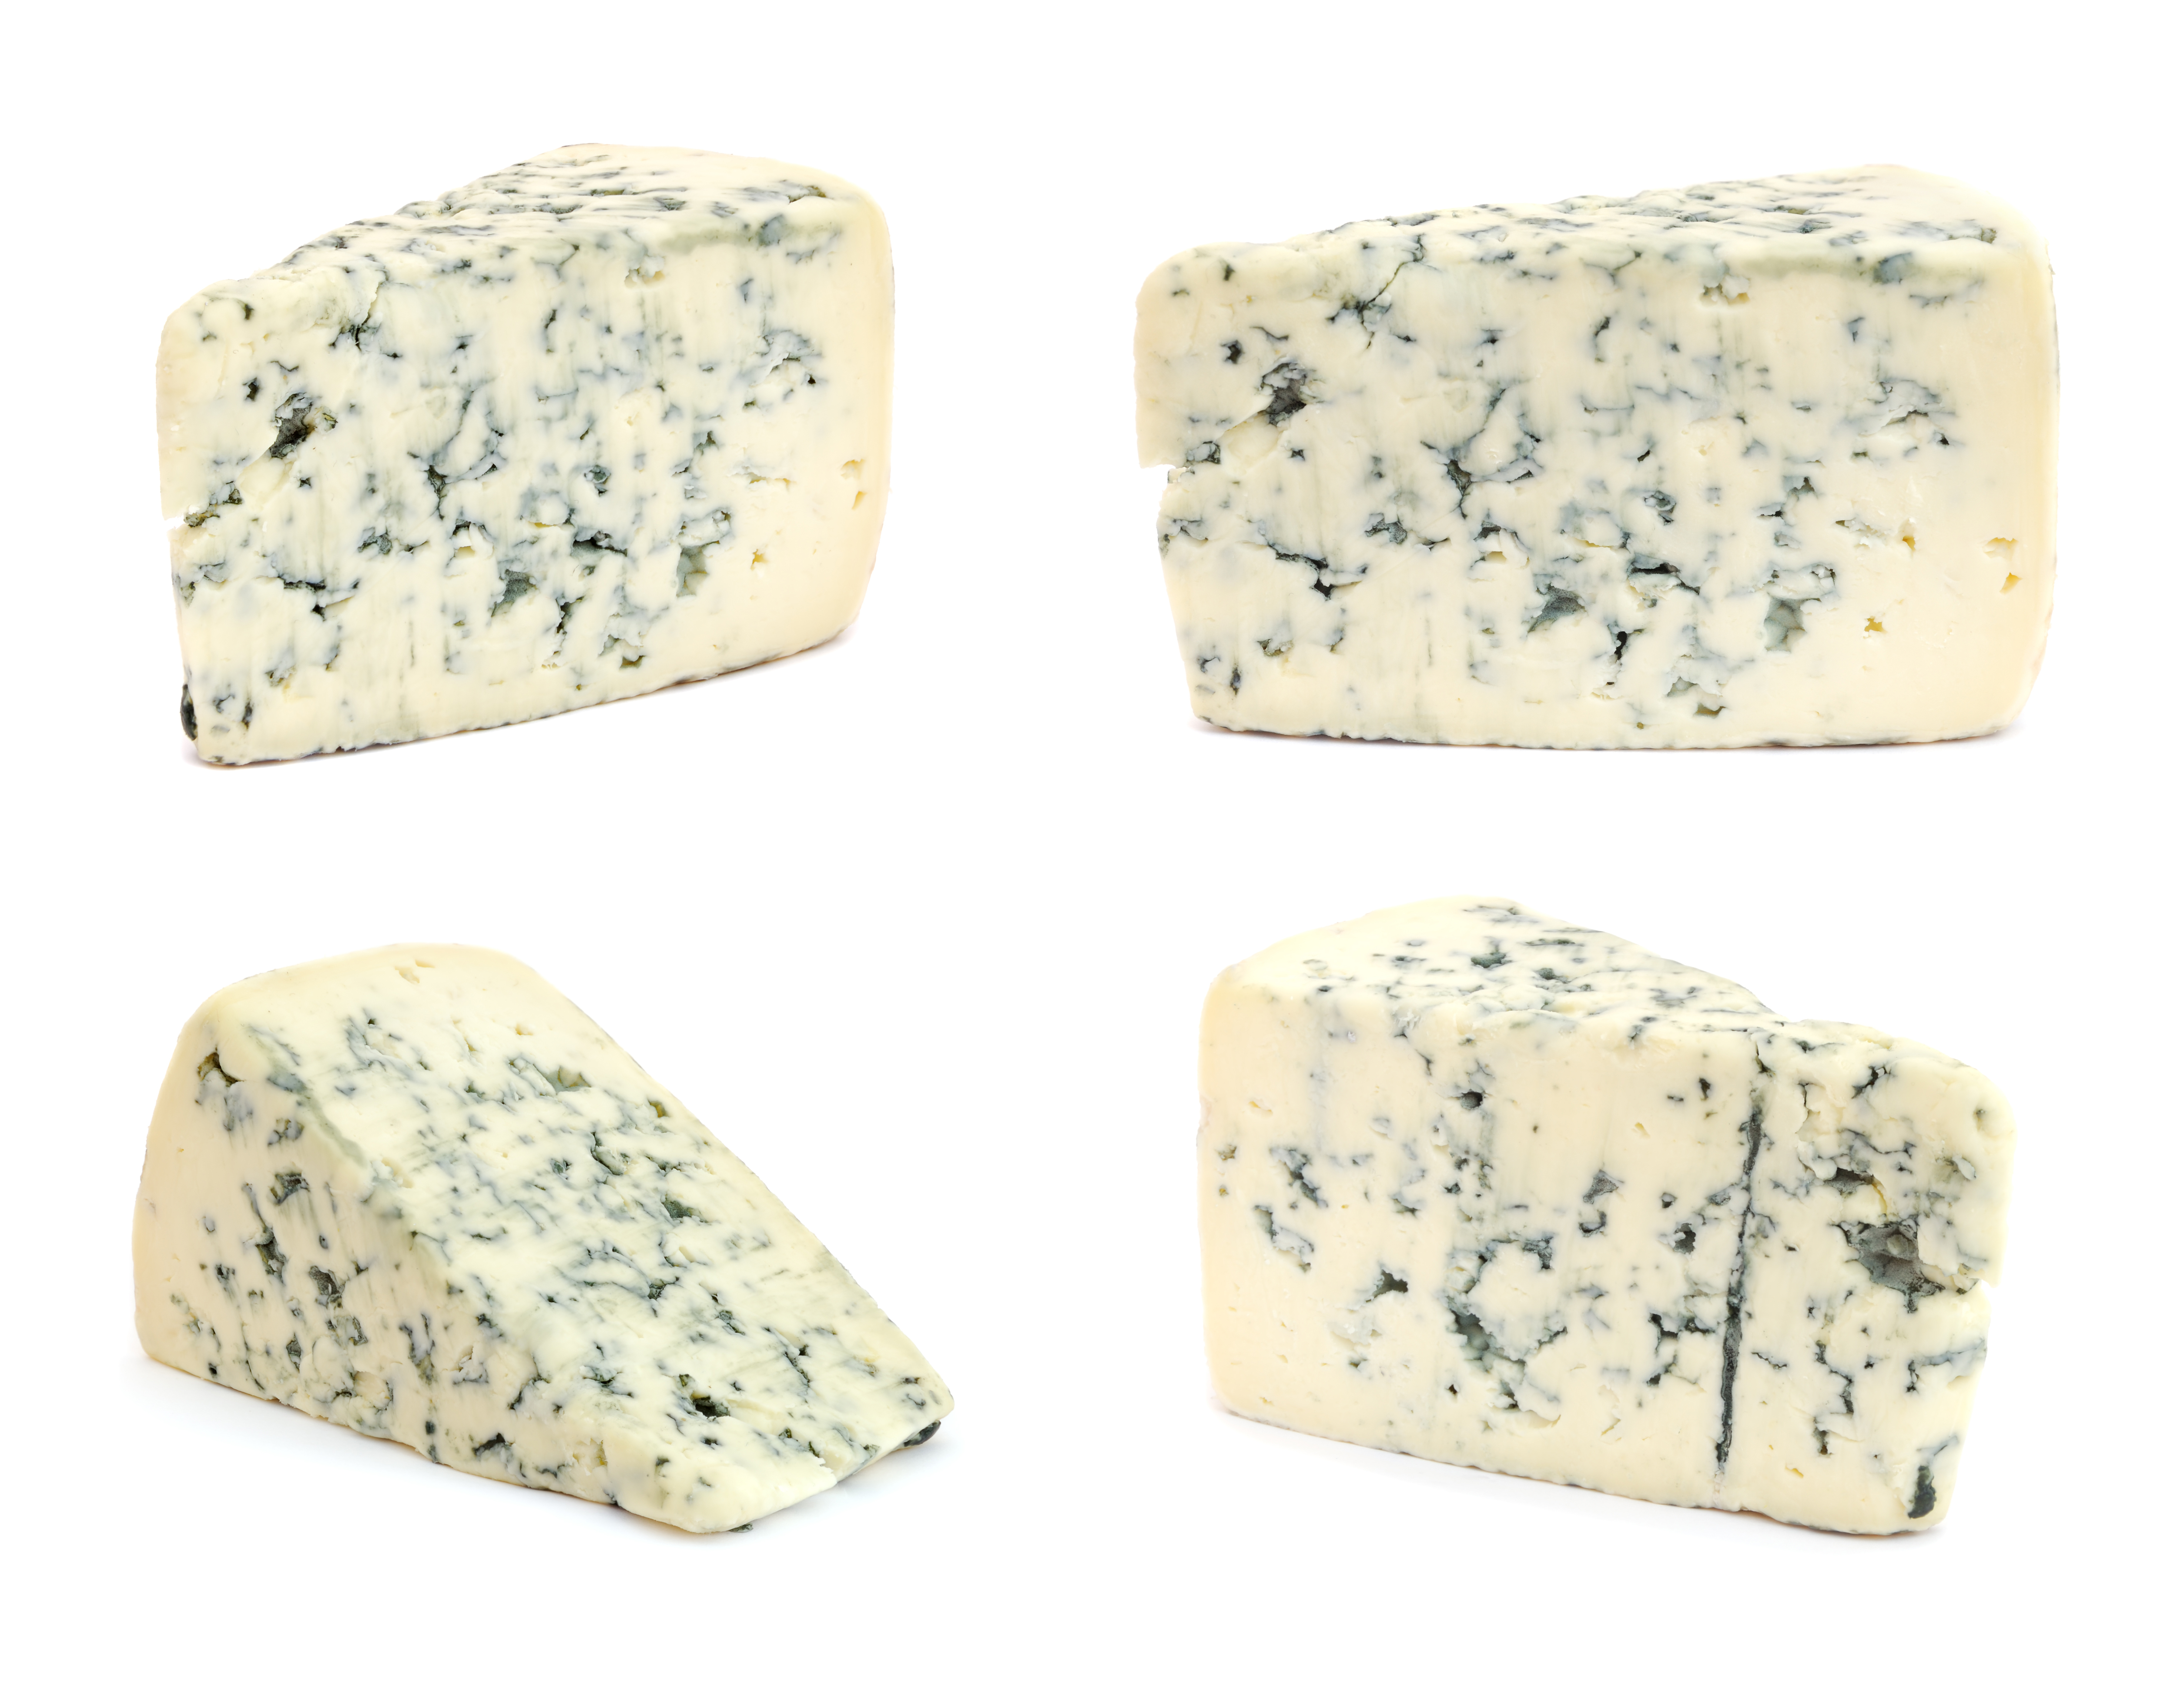 examples of blue mould in cheese